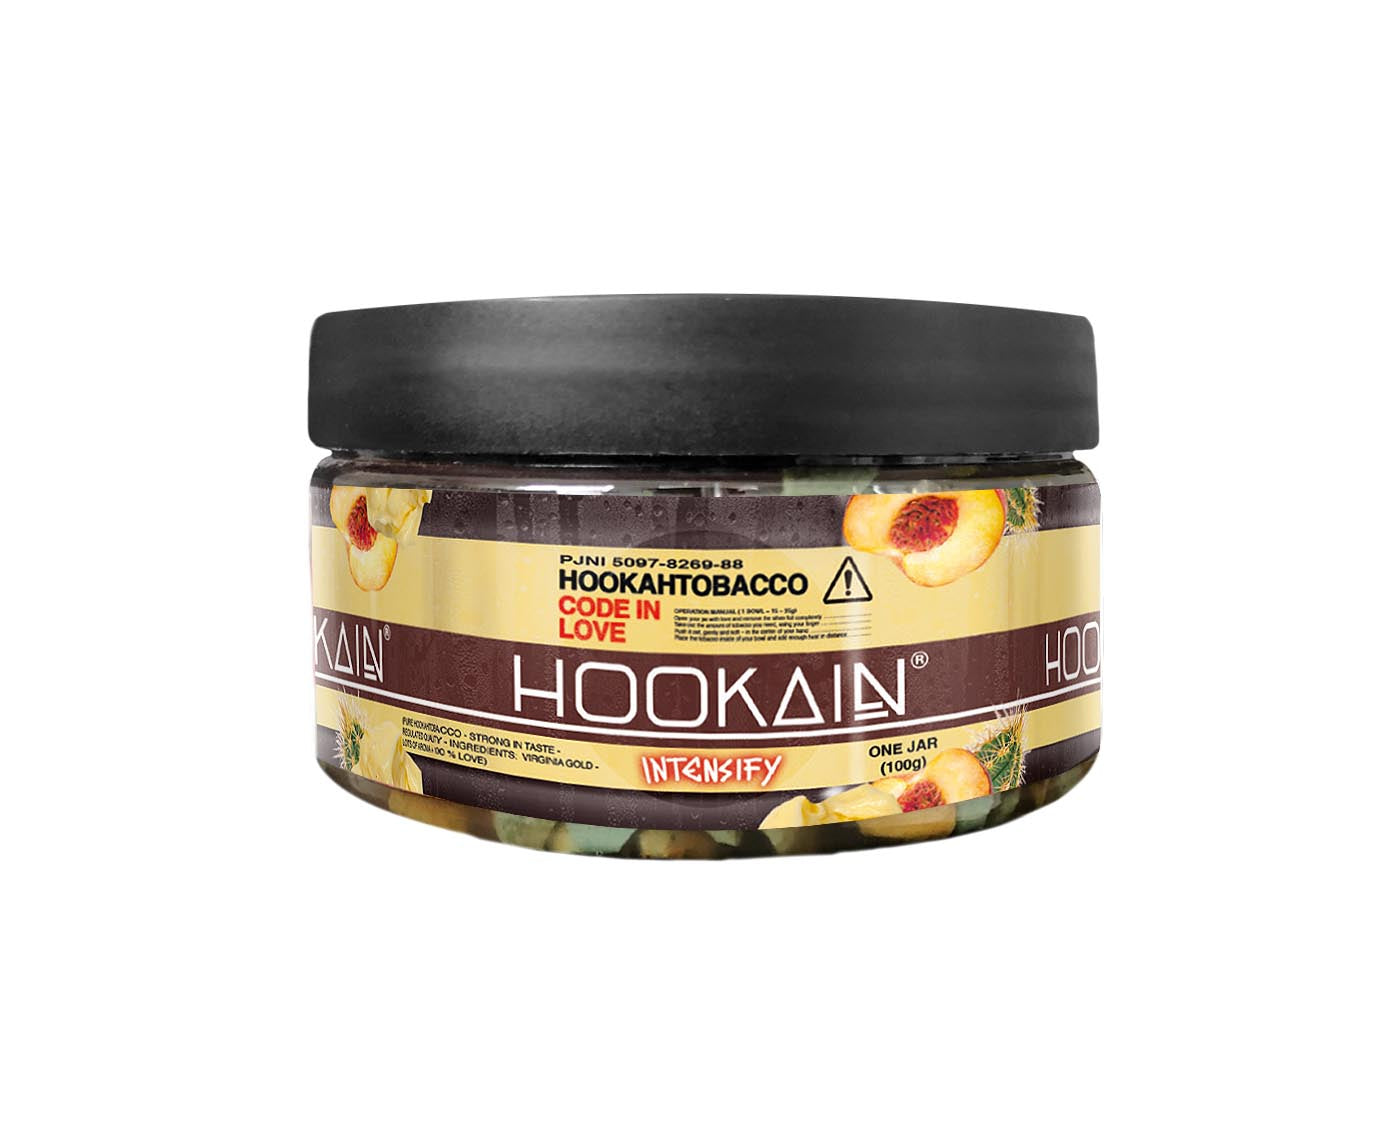 HOOKAIN INTENSIFY STONES - CODE IN LOVE 100g